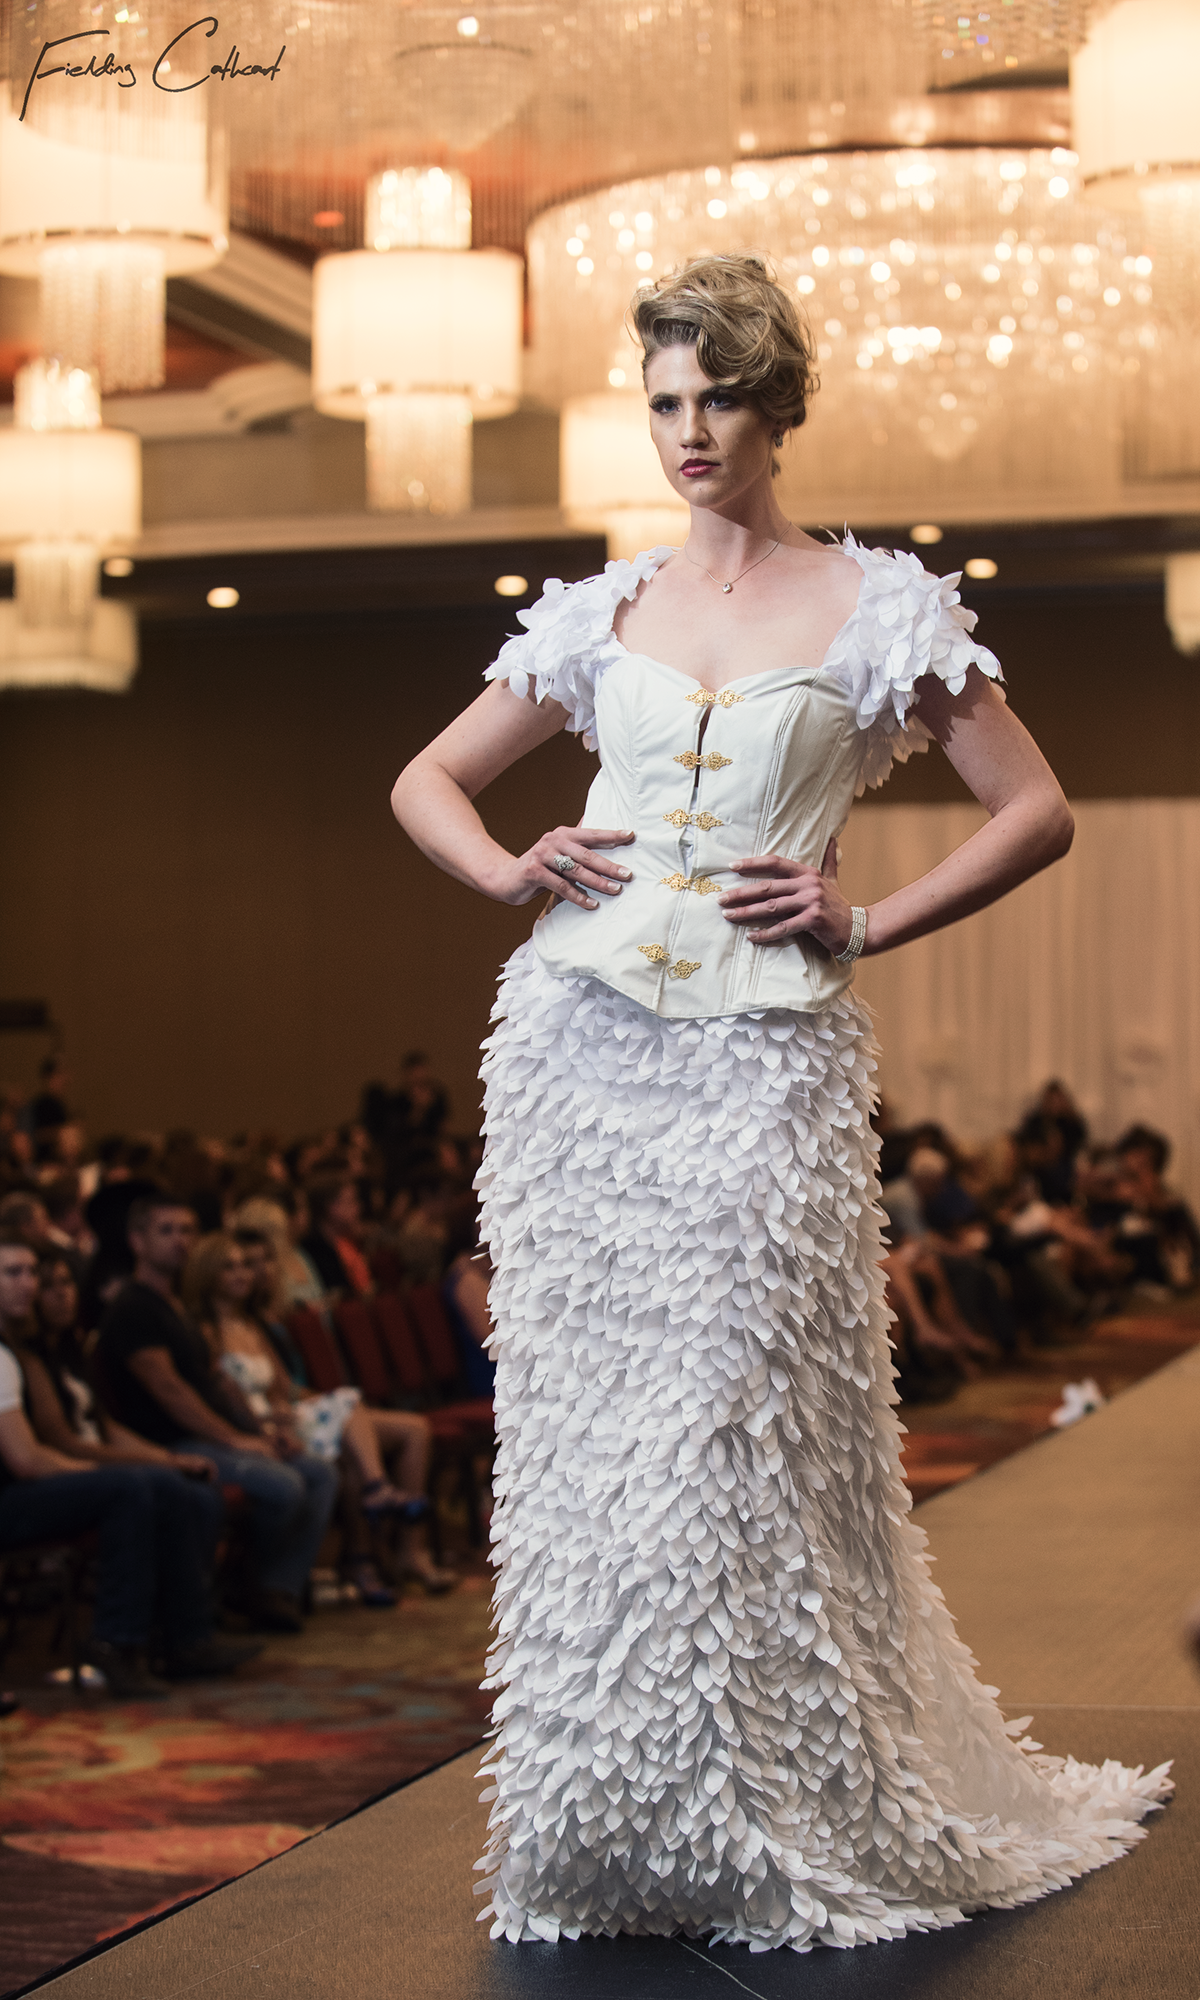 Leah Radcliffe  wearing a design from   Edward Coleman  at the Reno Fashion Show make up by Grace Avila and assistant, Hair by   Kai Stanton  A big thank you to   Tru Talent Agency  i know a few of your wonderful models where there